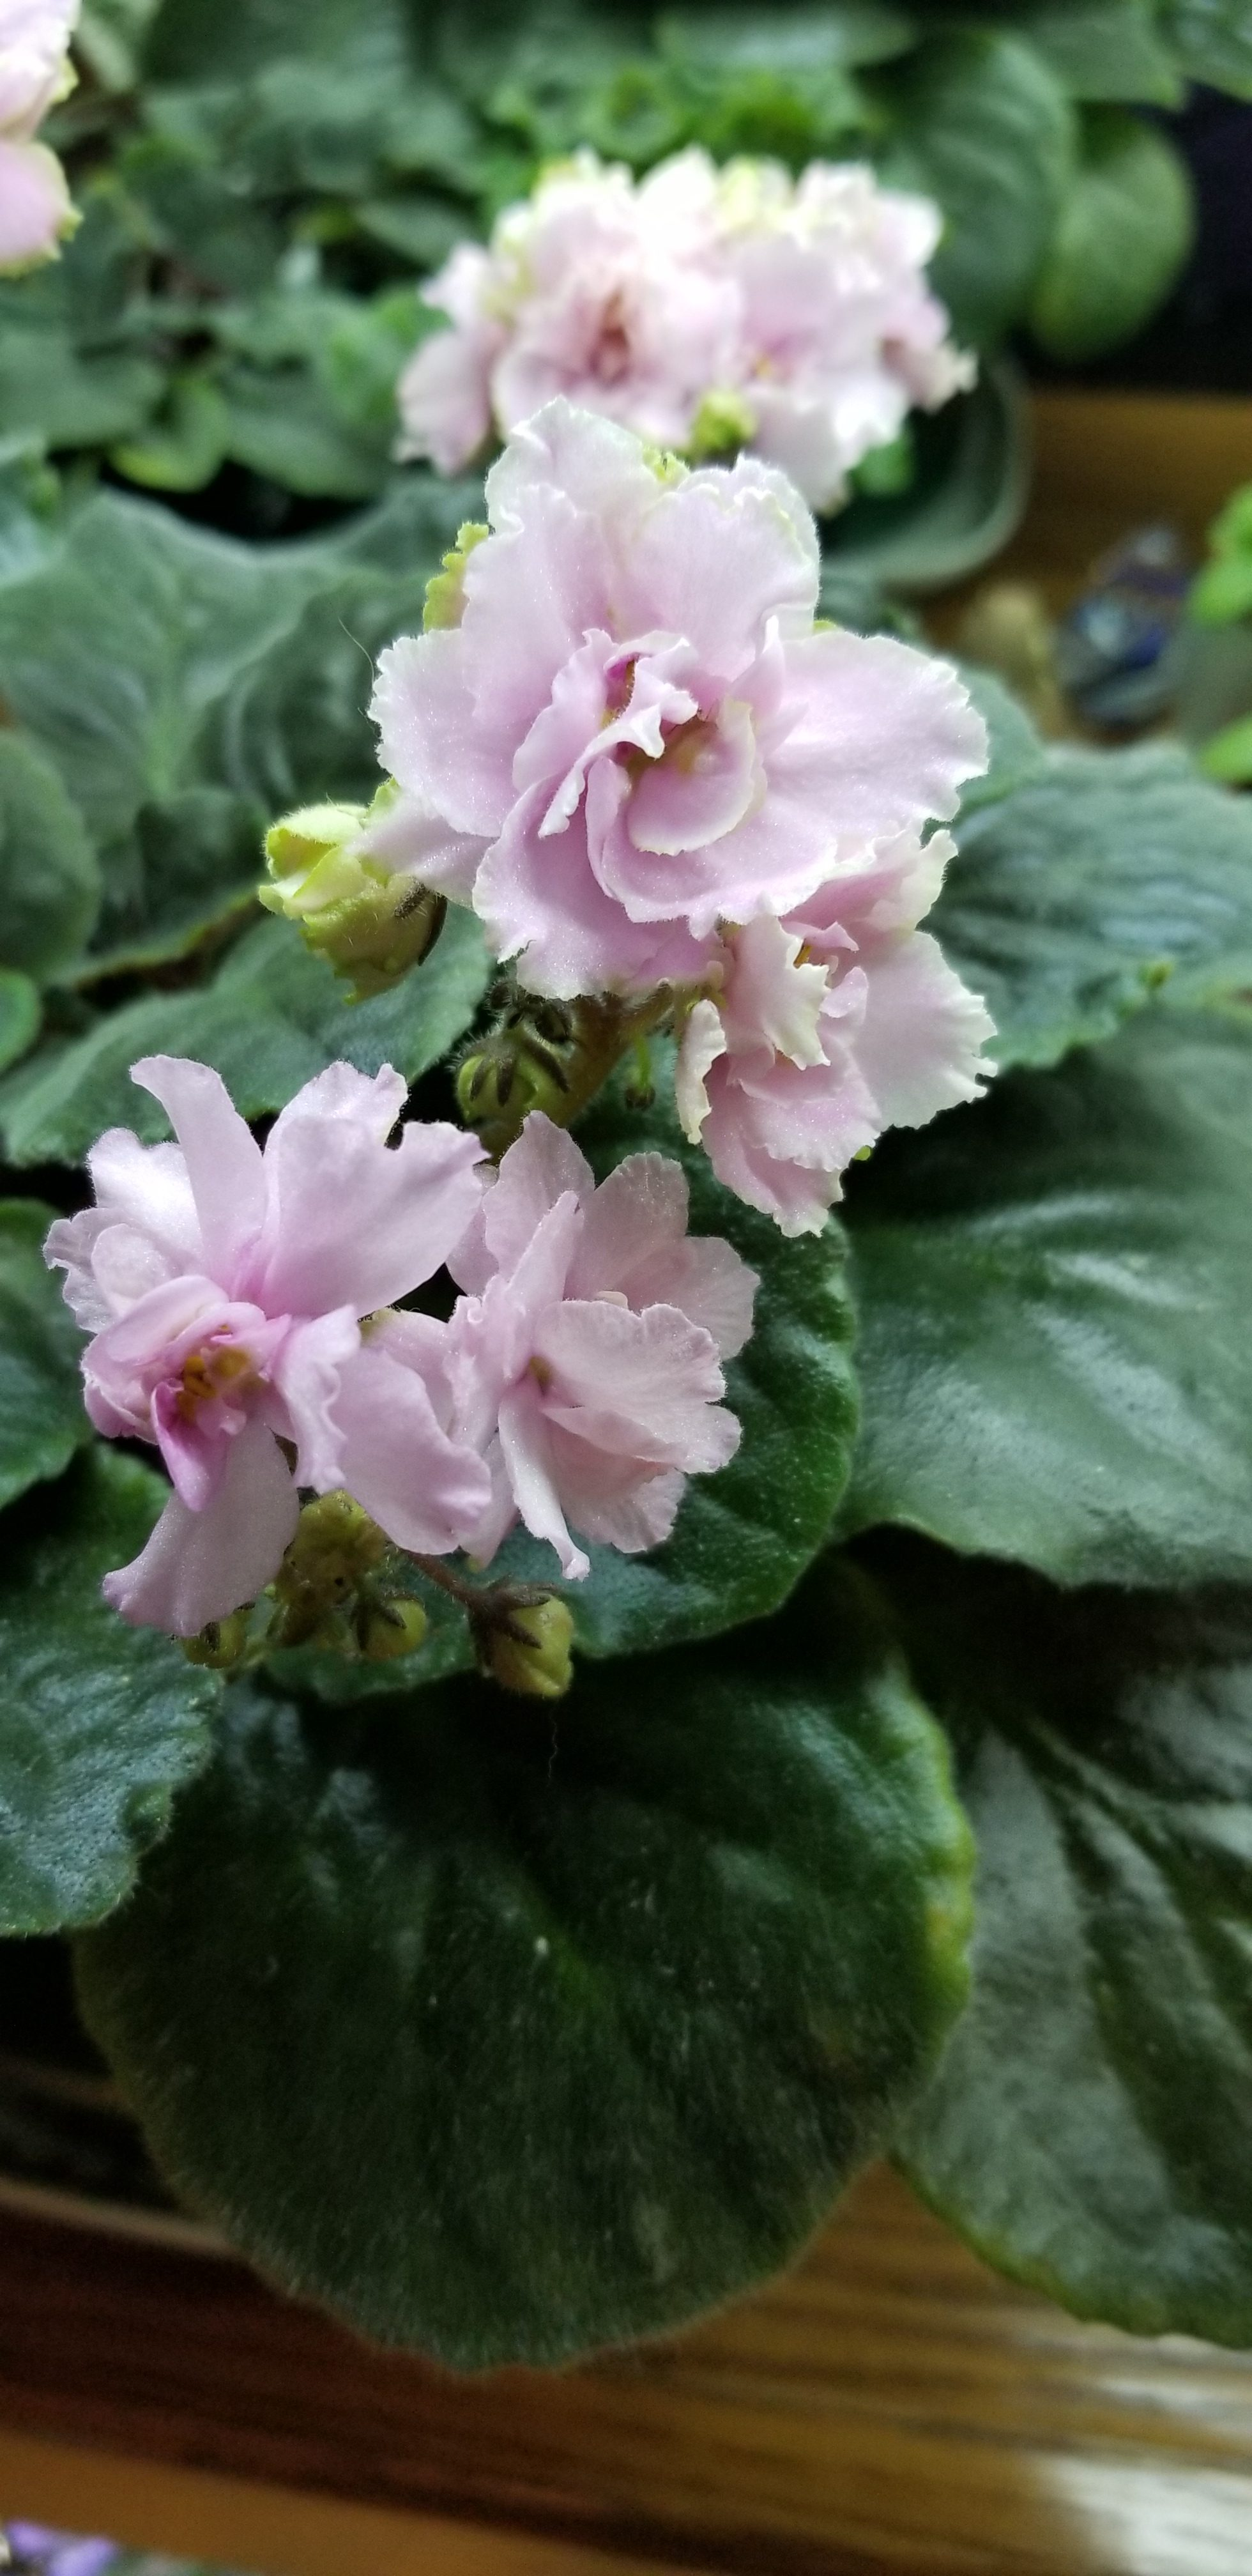 "Pink with white to green edges, 1.75"" blooms on tall stems in clusters                                                                                                                                                                                                                                         Size/growth habit:  Standard size, Flat foliage lightly quilted"